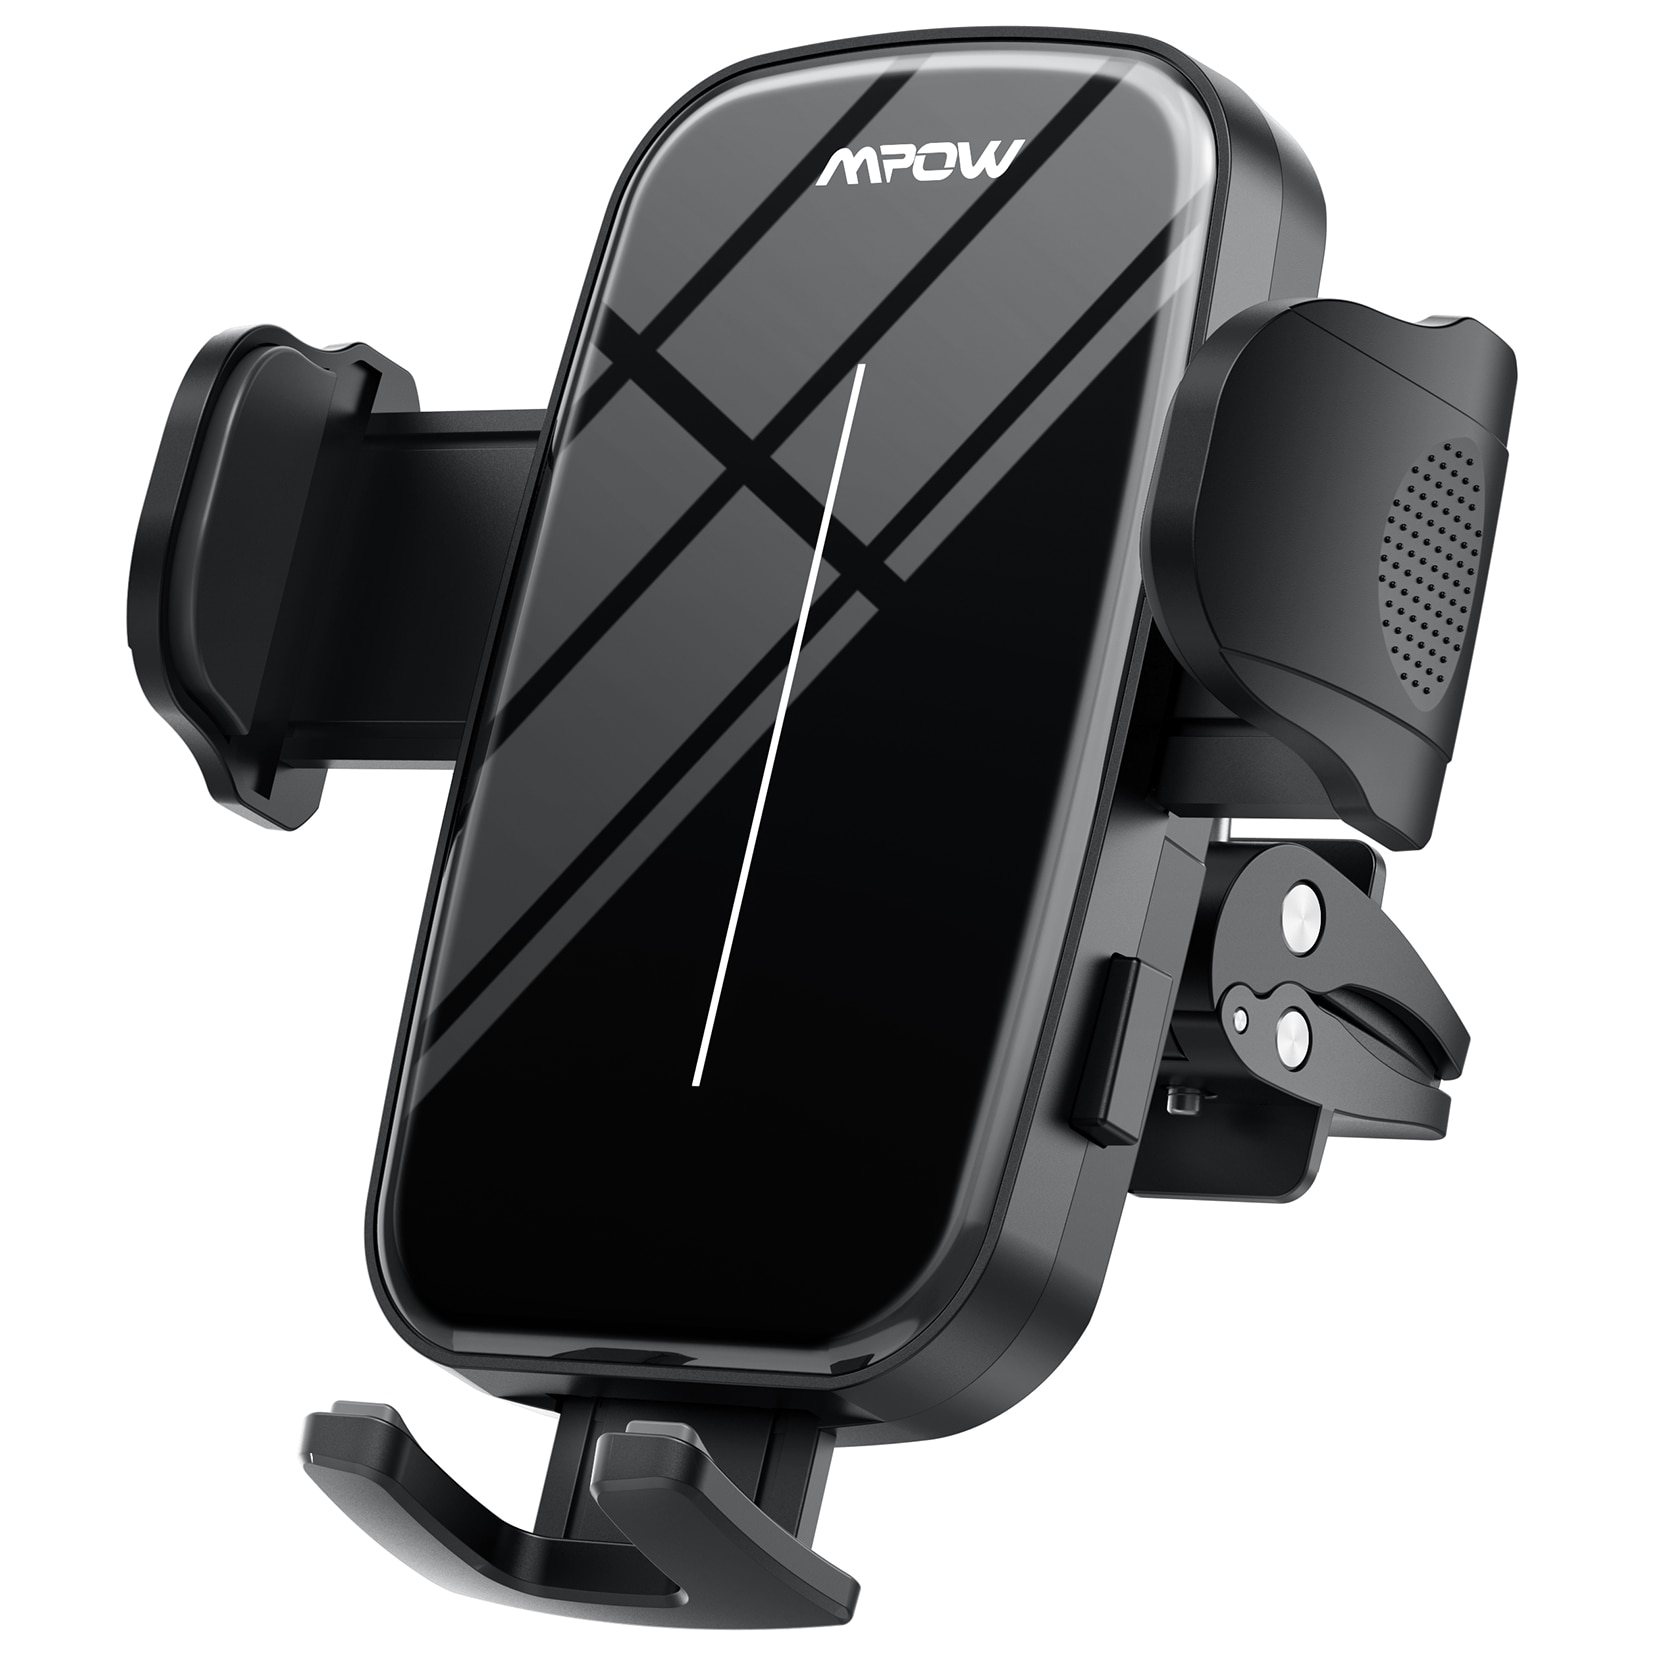 He5e4658e2ba64510a3637cb57805a4c0A - Mpow CA174 Universal Car Phone Mount Air Vent Car Phone Holder with Stable Clip Compatible with iPhone 12 11 Pro Max XS 8 Galaxy